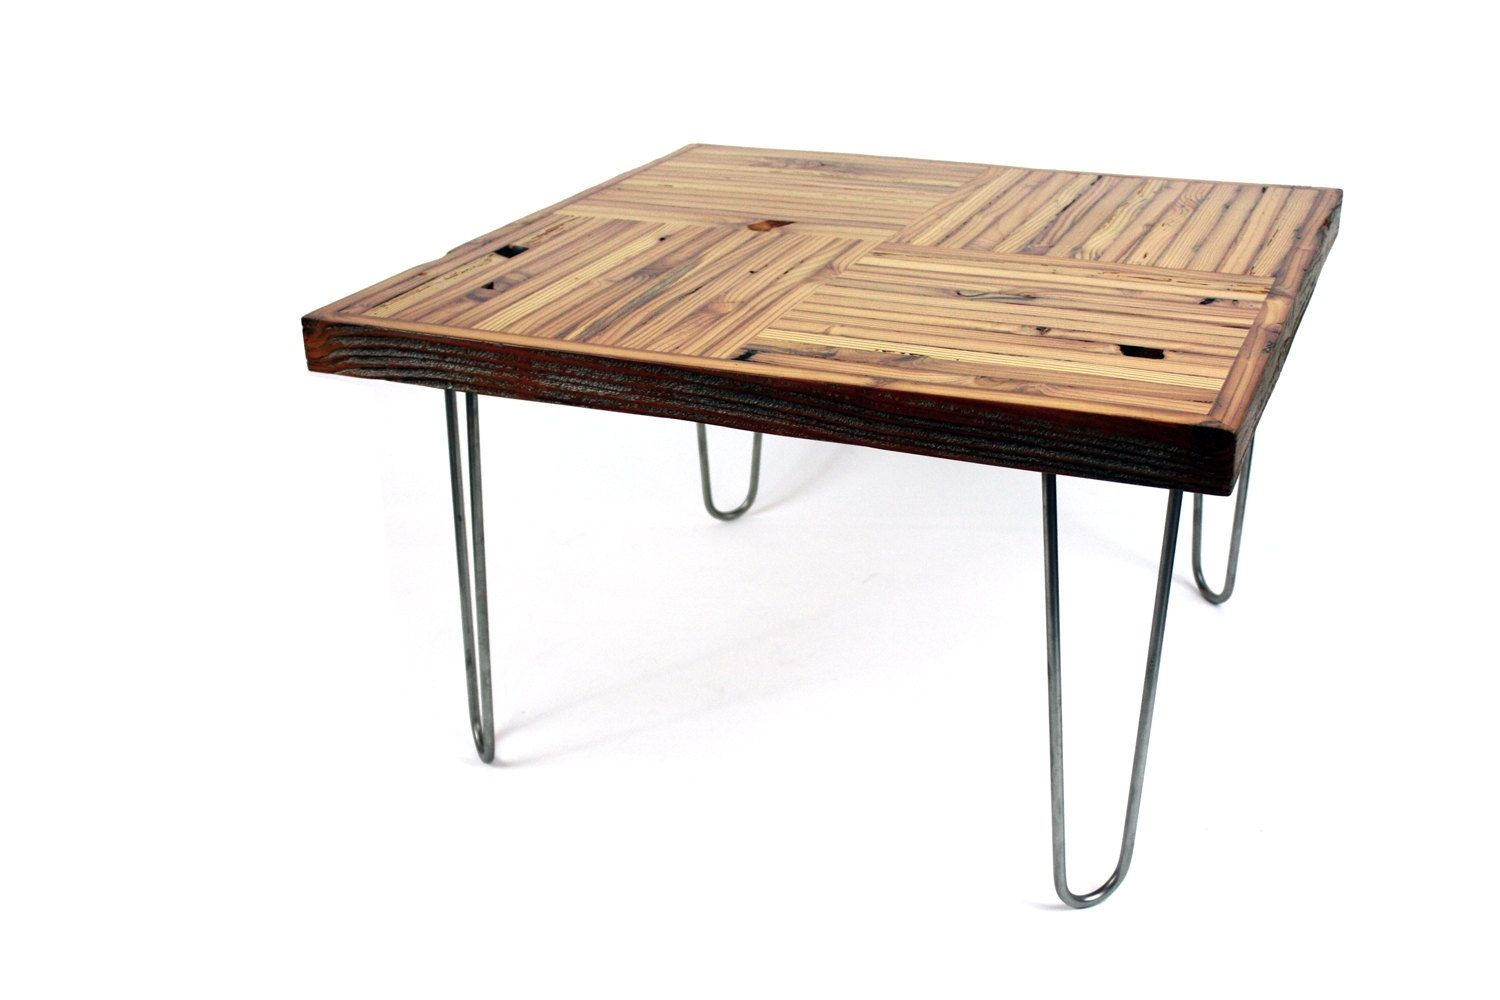 Hand Crafted 39 Block Parquet 39 Coffee Table Reclaimed Wood Table Mid Century Influenced By